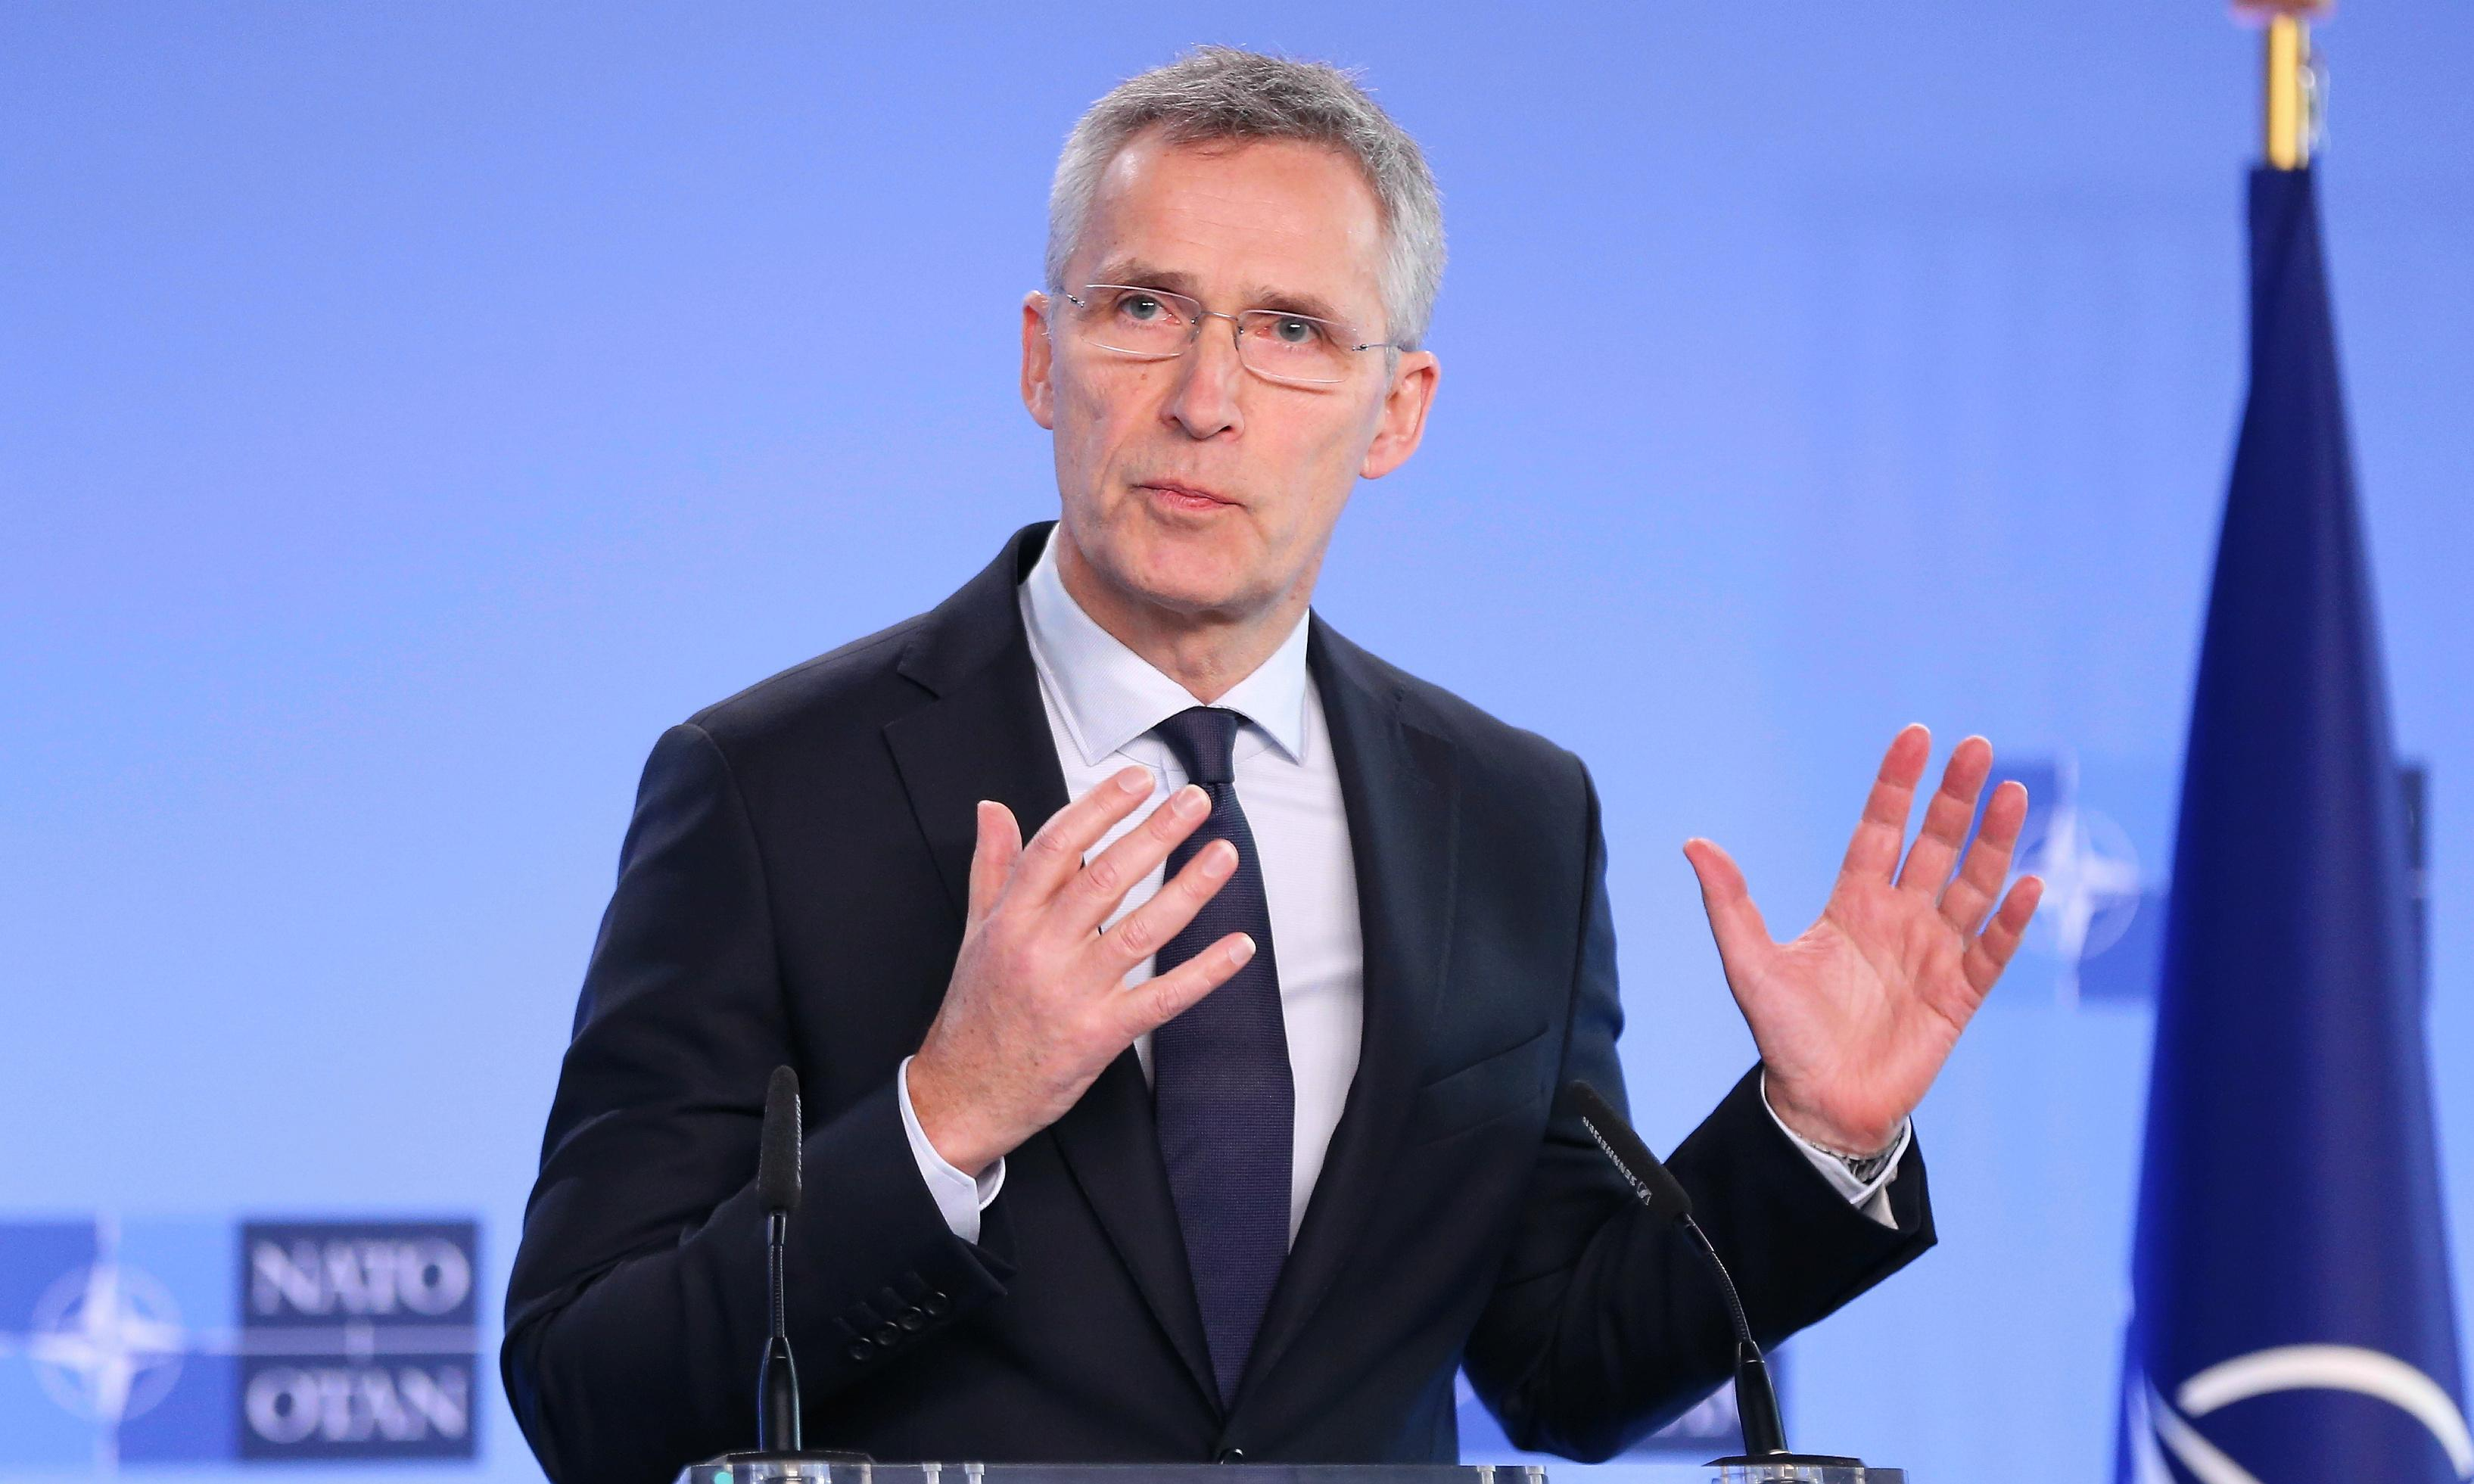 Nato expresses 'full solidarity' with Turkey over Syria airstrikes